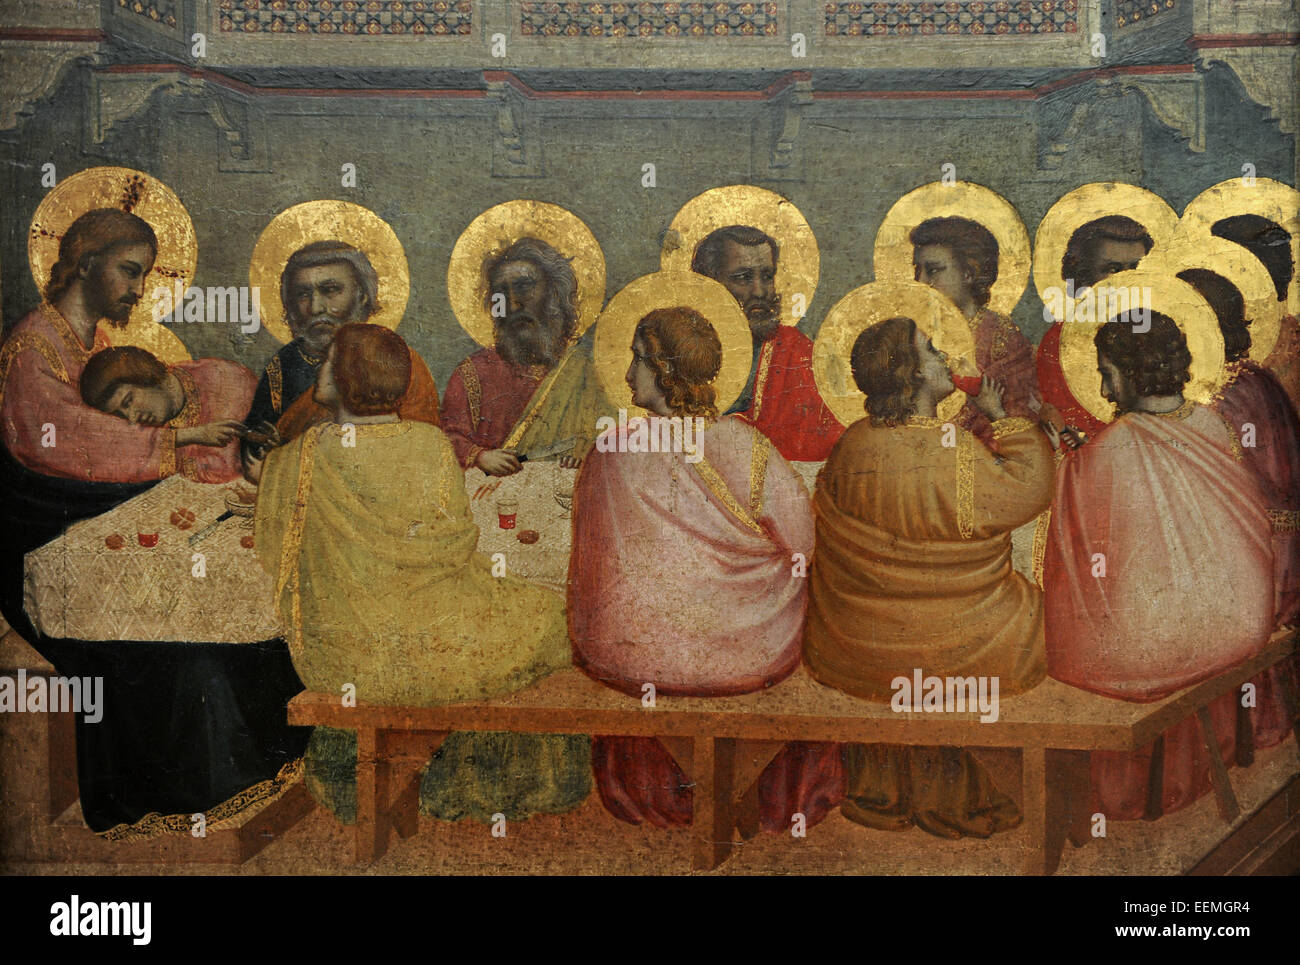 Giotto (1267-1337). Italian painter. Gothic. Last Supper, 1306. From Church  of Santa Croce, Florence. Alte Pinakothek. Munich. Germany.